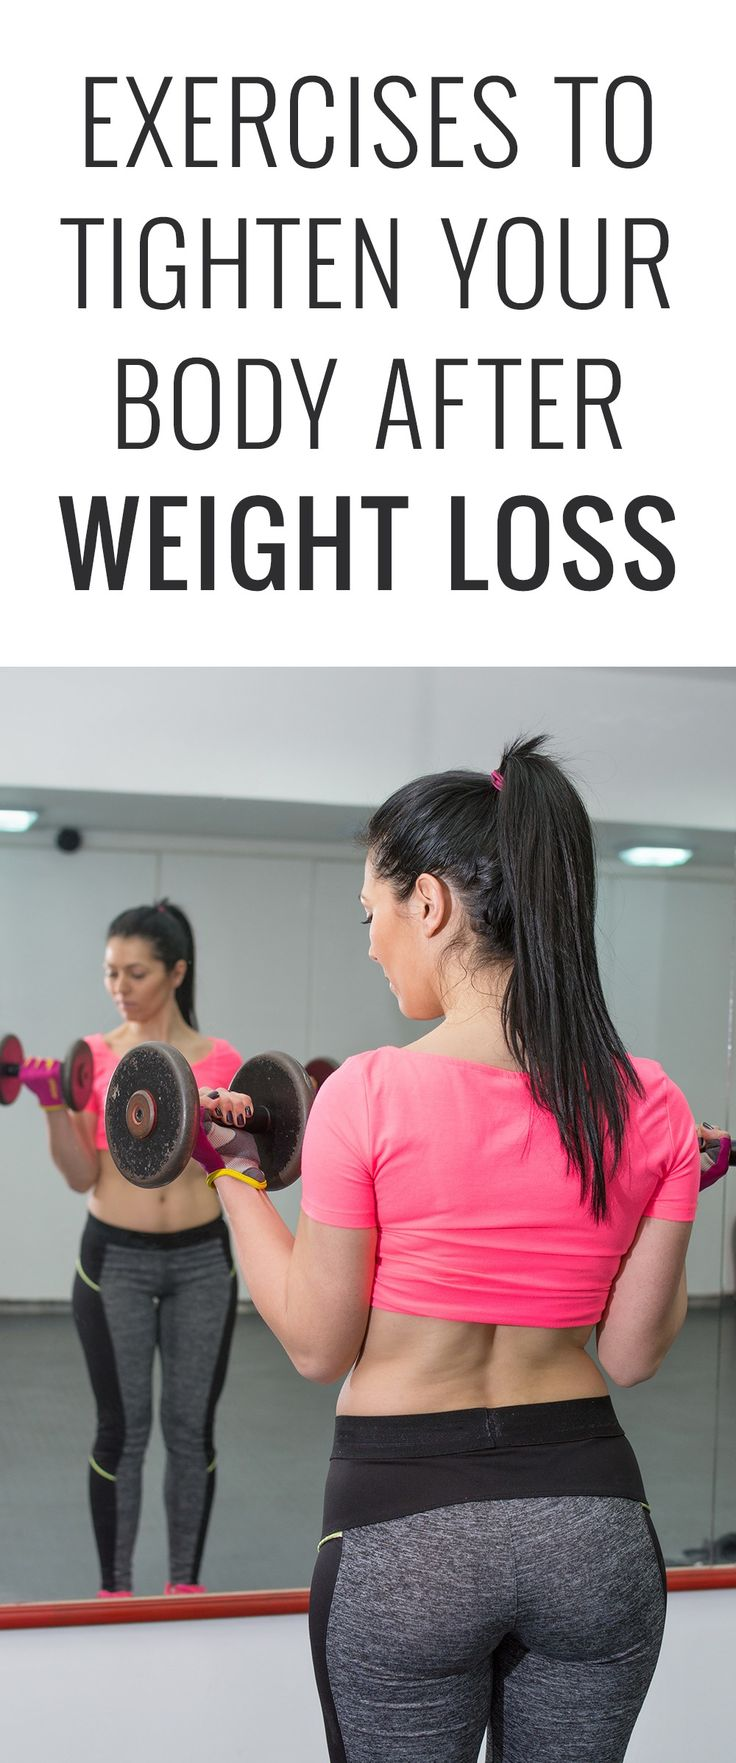 Sometimes when you lose weight you also gain loose skin. This problem most often develops in your face, neck, under arms, abdomen and thighs. Some exercises can help to tighten these areas.